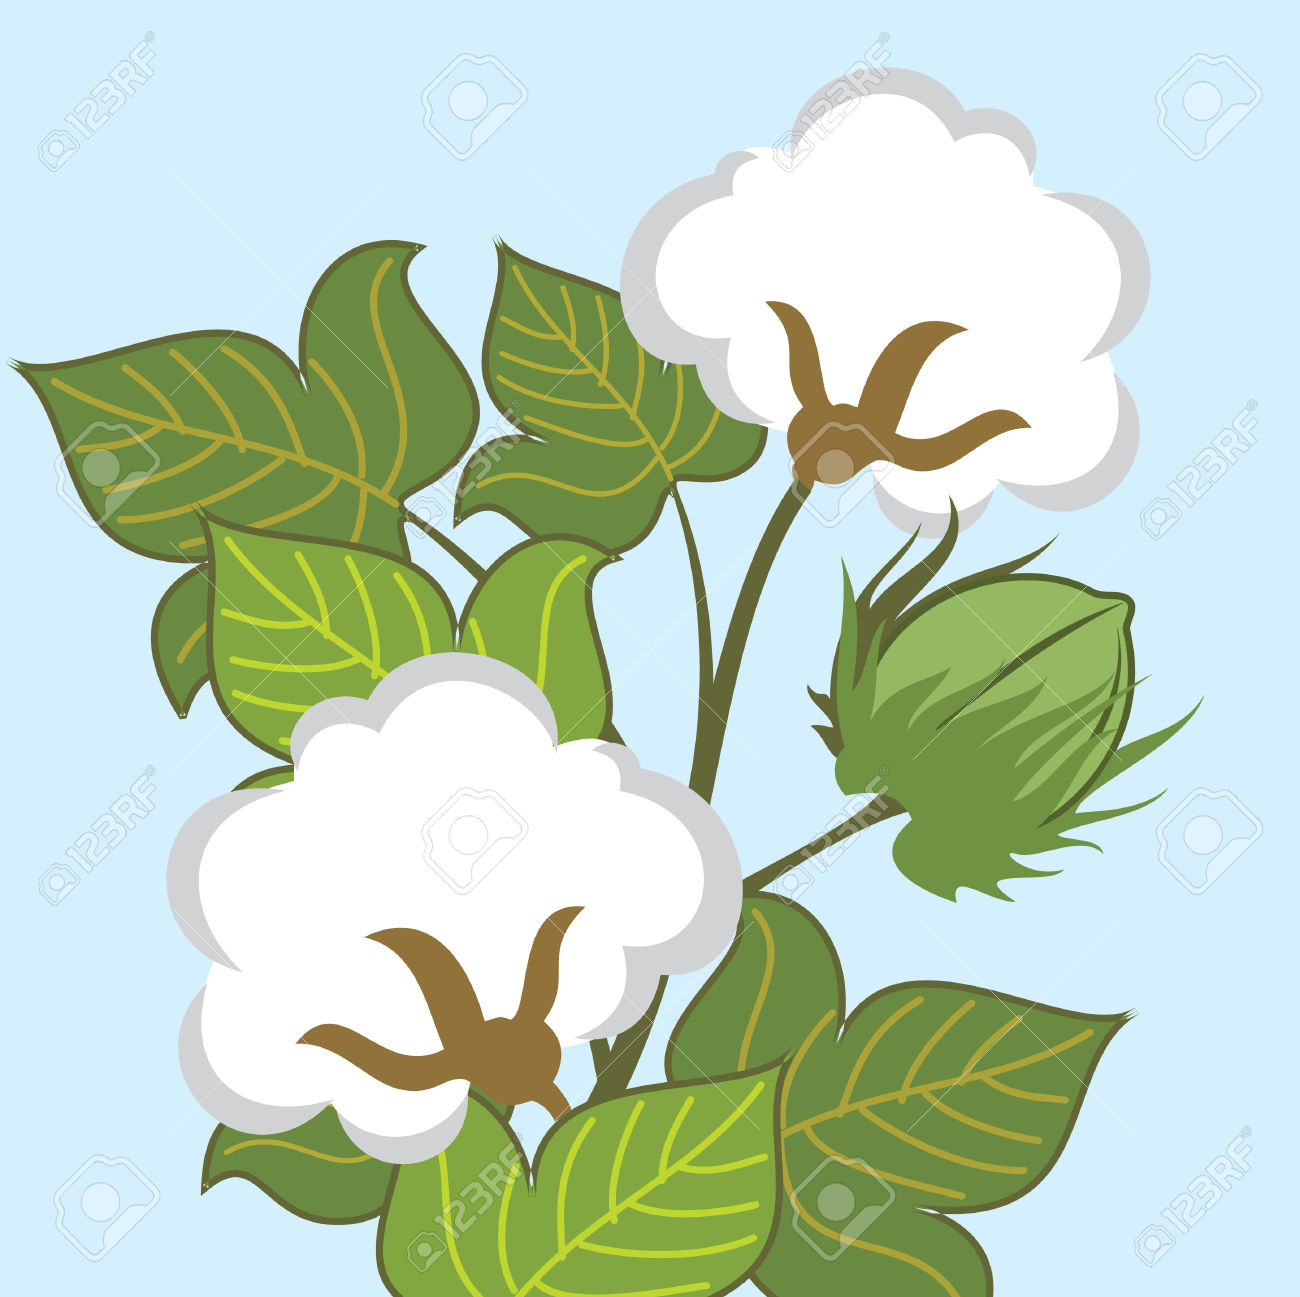 Cotton Plant Closeup Royalty Free Cliparts, Vectors, And Stock.